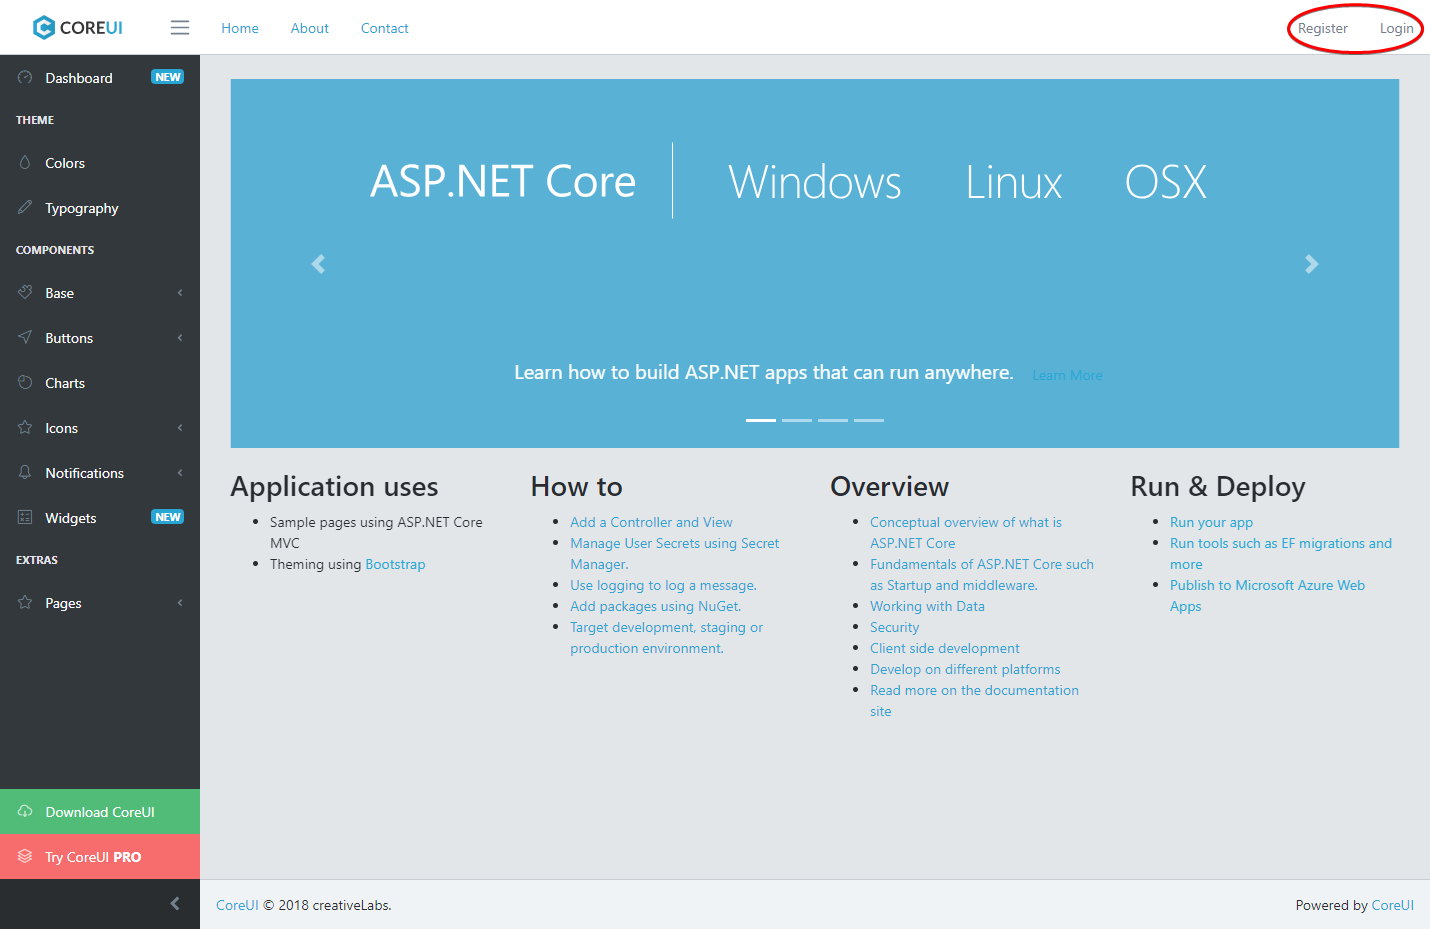 Building elegant applications with ASP.NET Core MVC 2.1 and CoreUI 2 (Bootstrap 4) /posts/images/chrome_2018-05-21_13-23-35.png